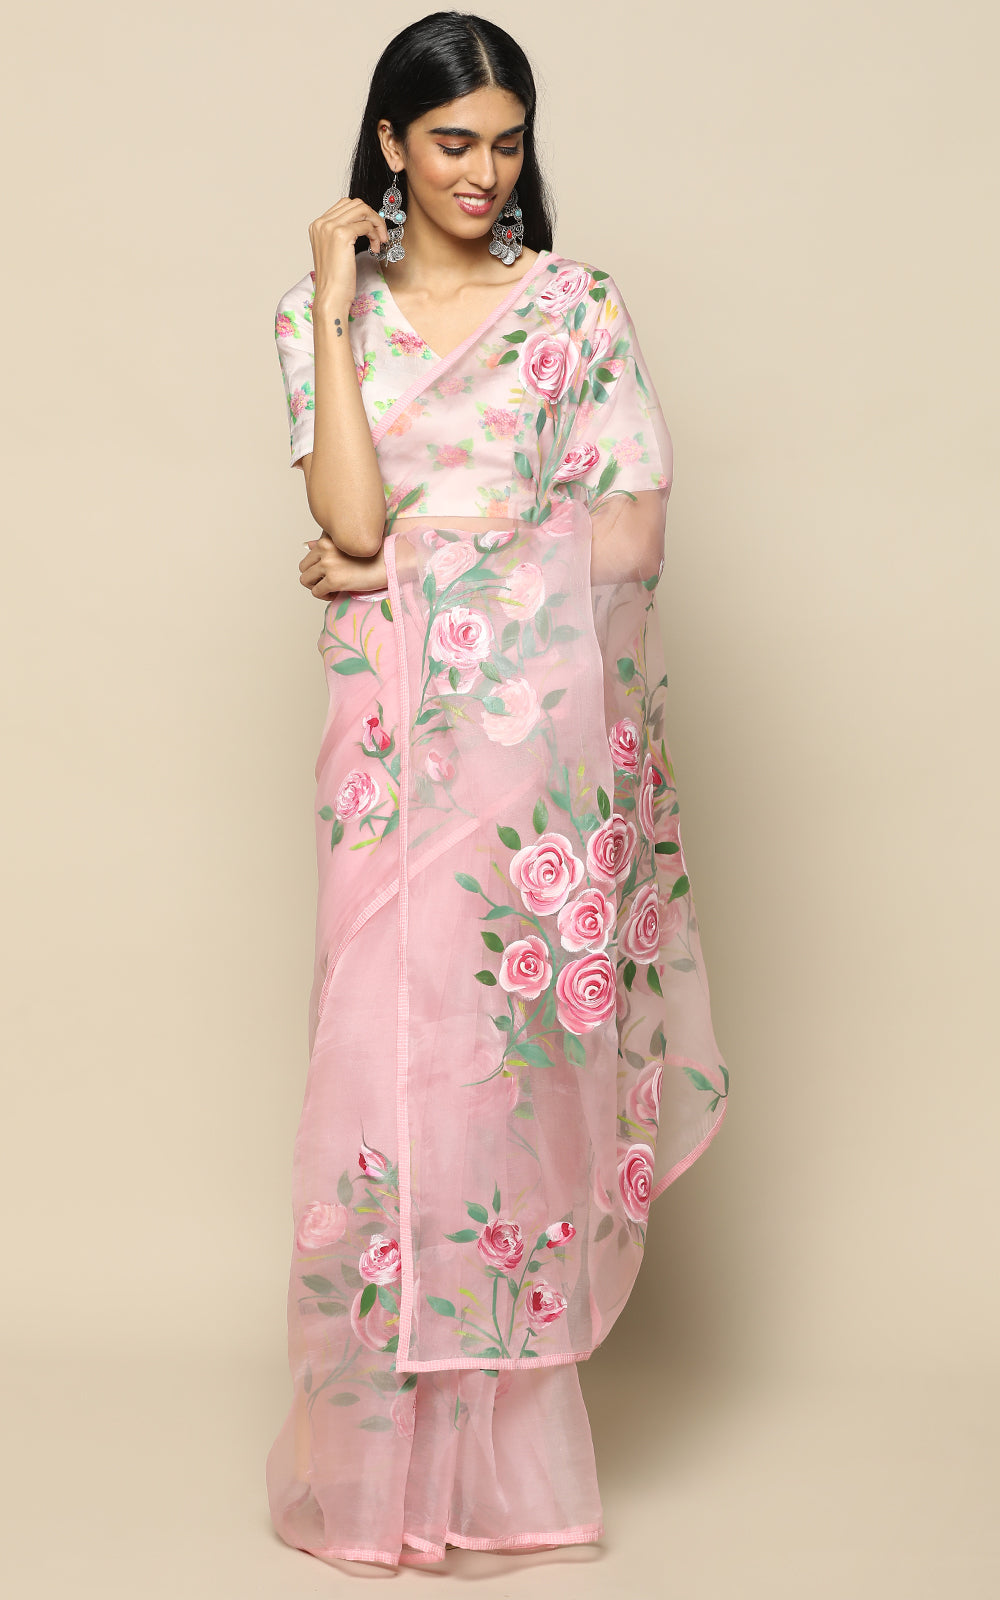 POWDER PINK ORGANZA SILK SAREE WITH PASTEL HANDPAINTED FLOWERS